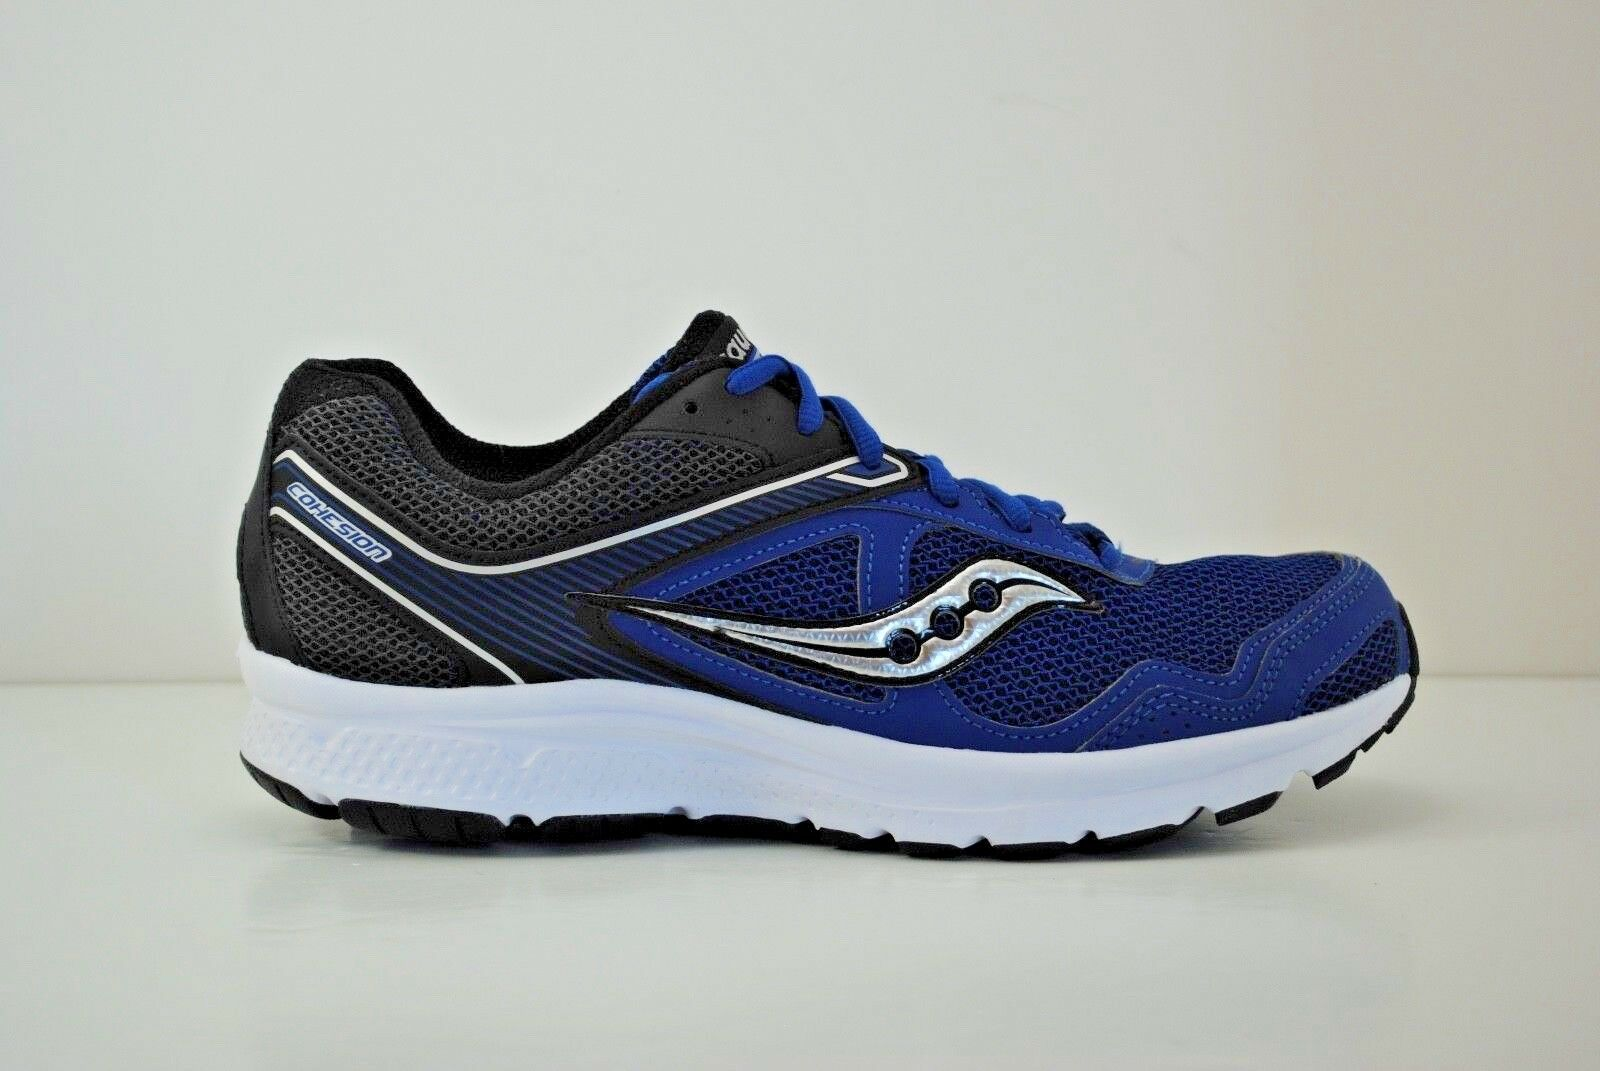 Mens Saucony Grid Cohesion 10 Running shoes Size 9.5 Black White bluee S25333-13